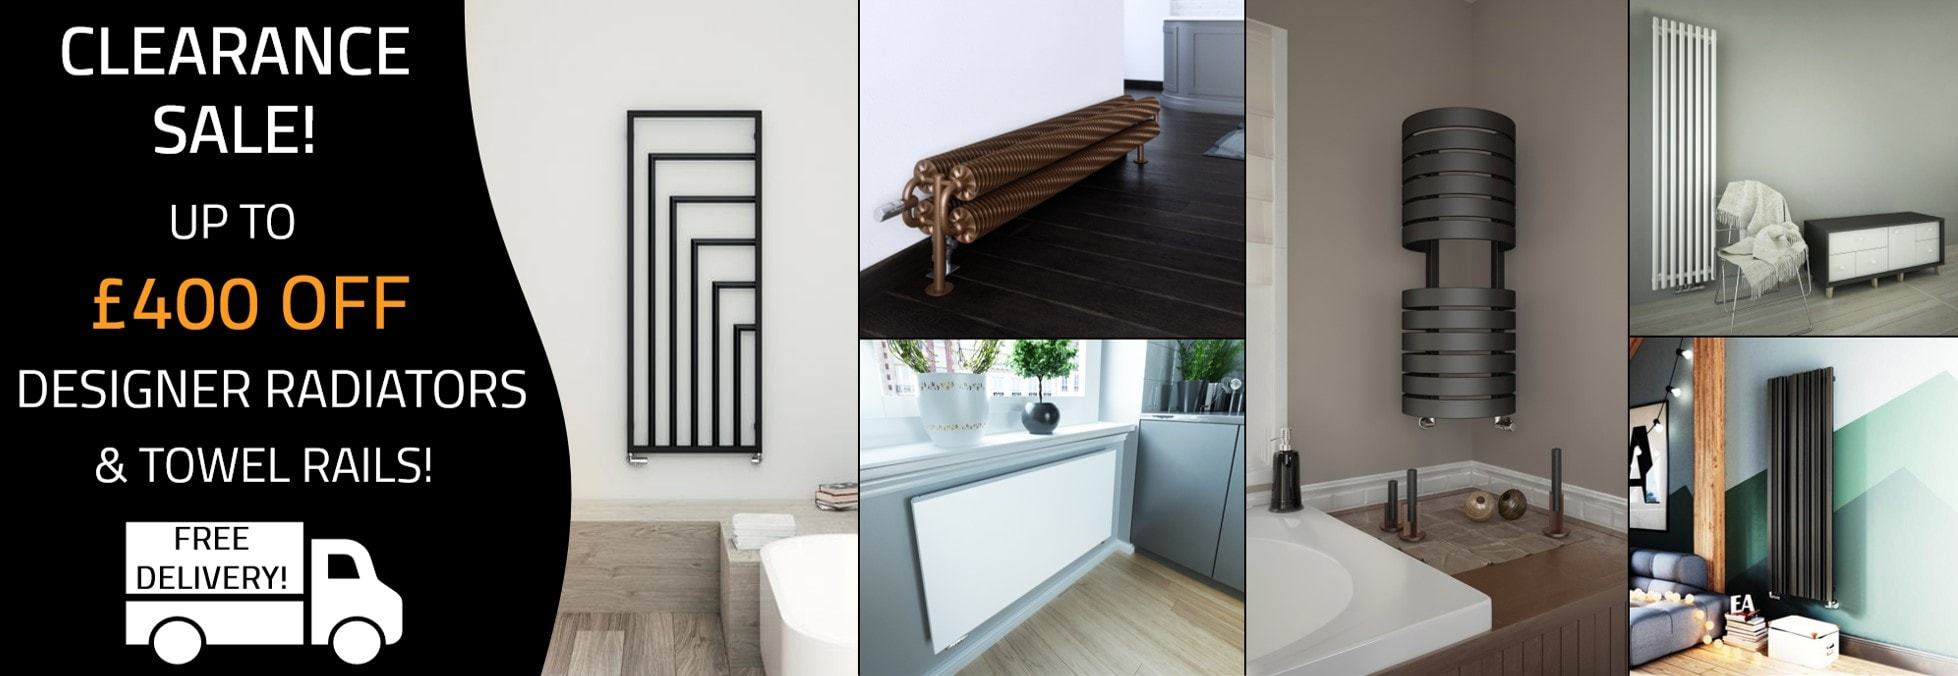 Heating Style Cover Clearance Sale Terma Radiators and Towel Rails